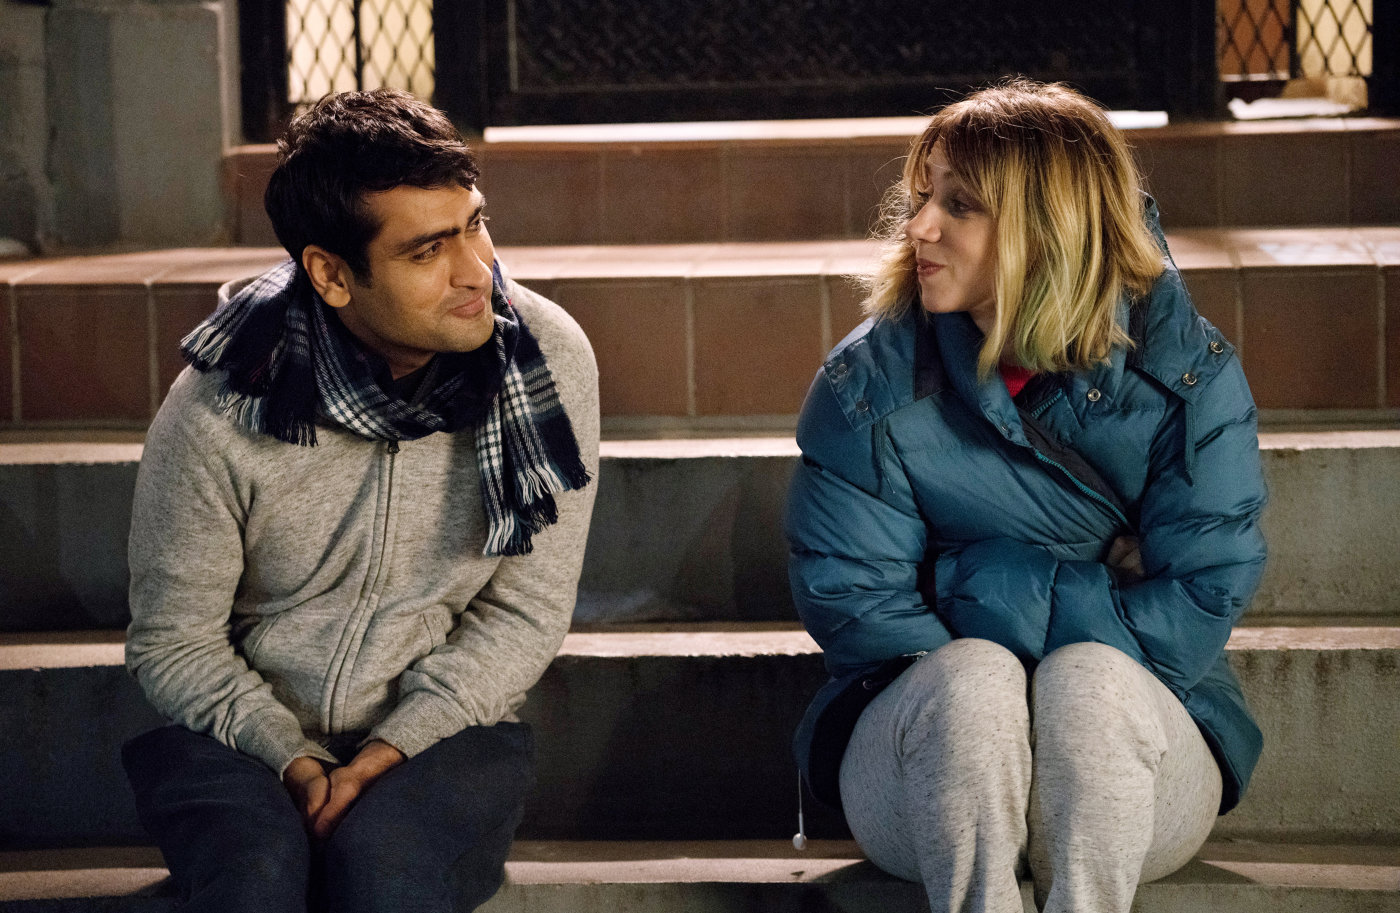 salah satu adegan di film The Big Sick